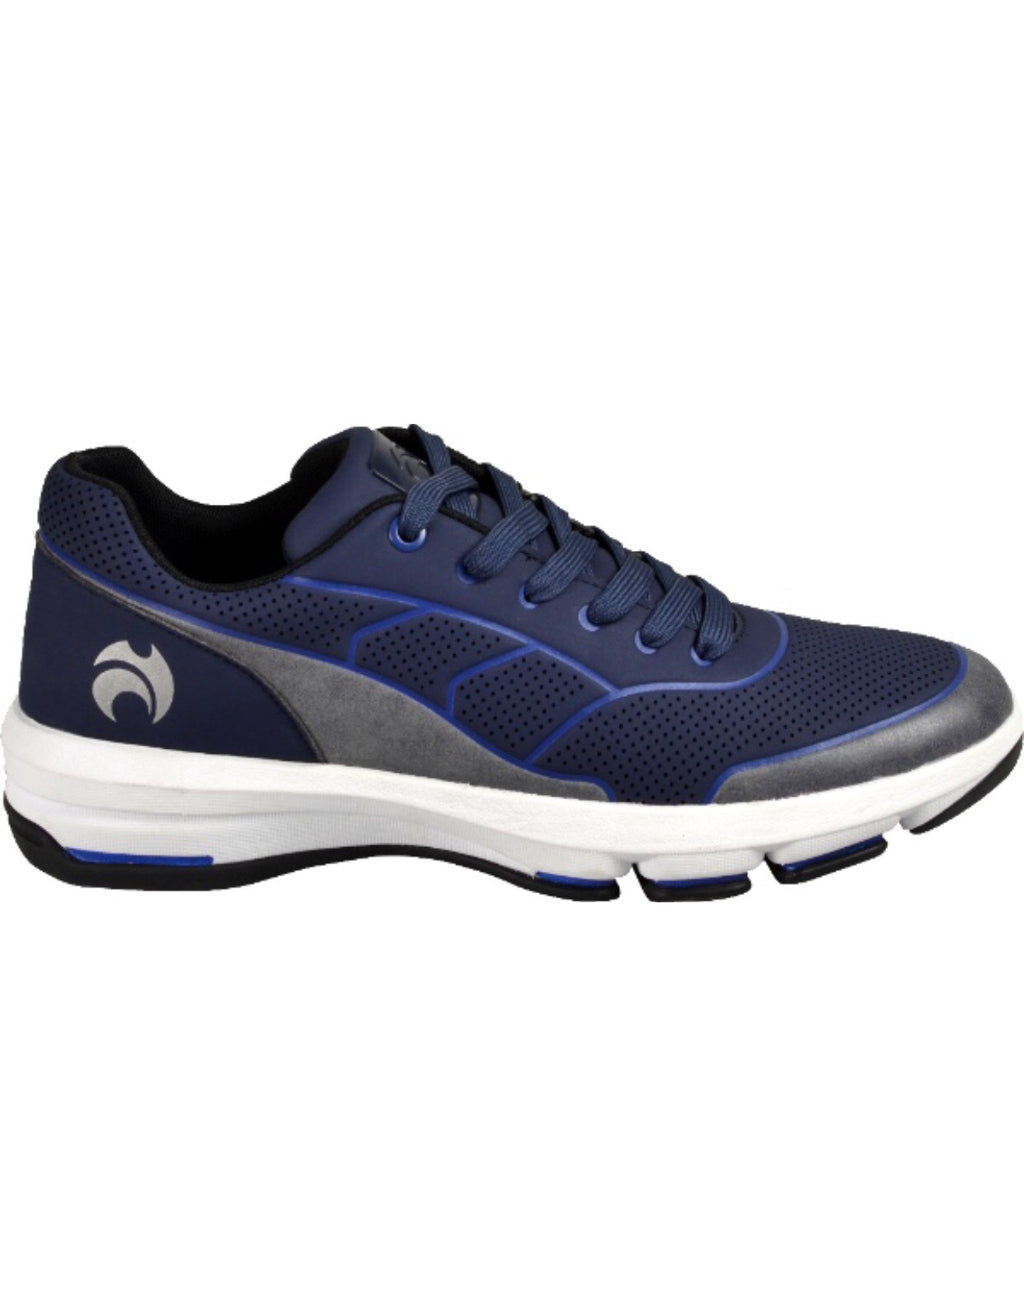 Henselite Women's Pro Sport 52 Shoes